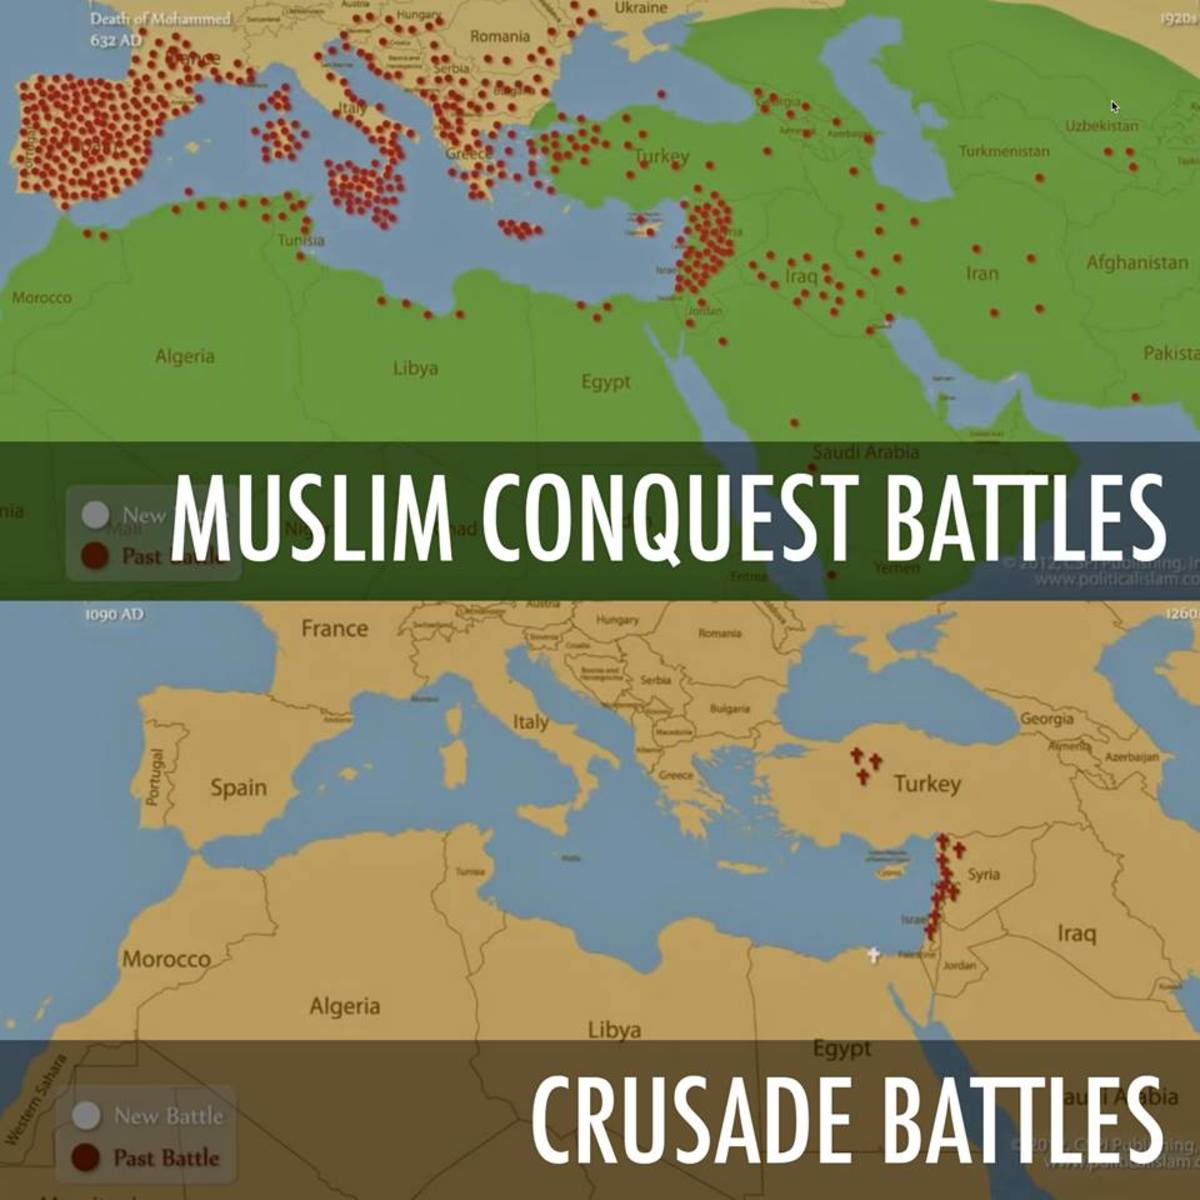 Muslim Militant Conquest vs the Crusades